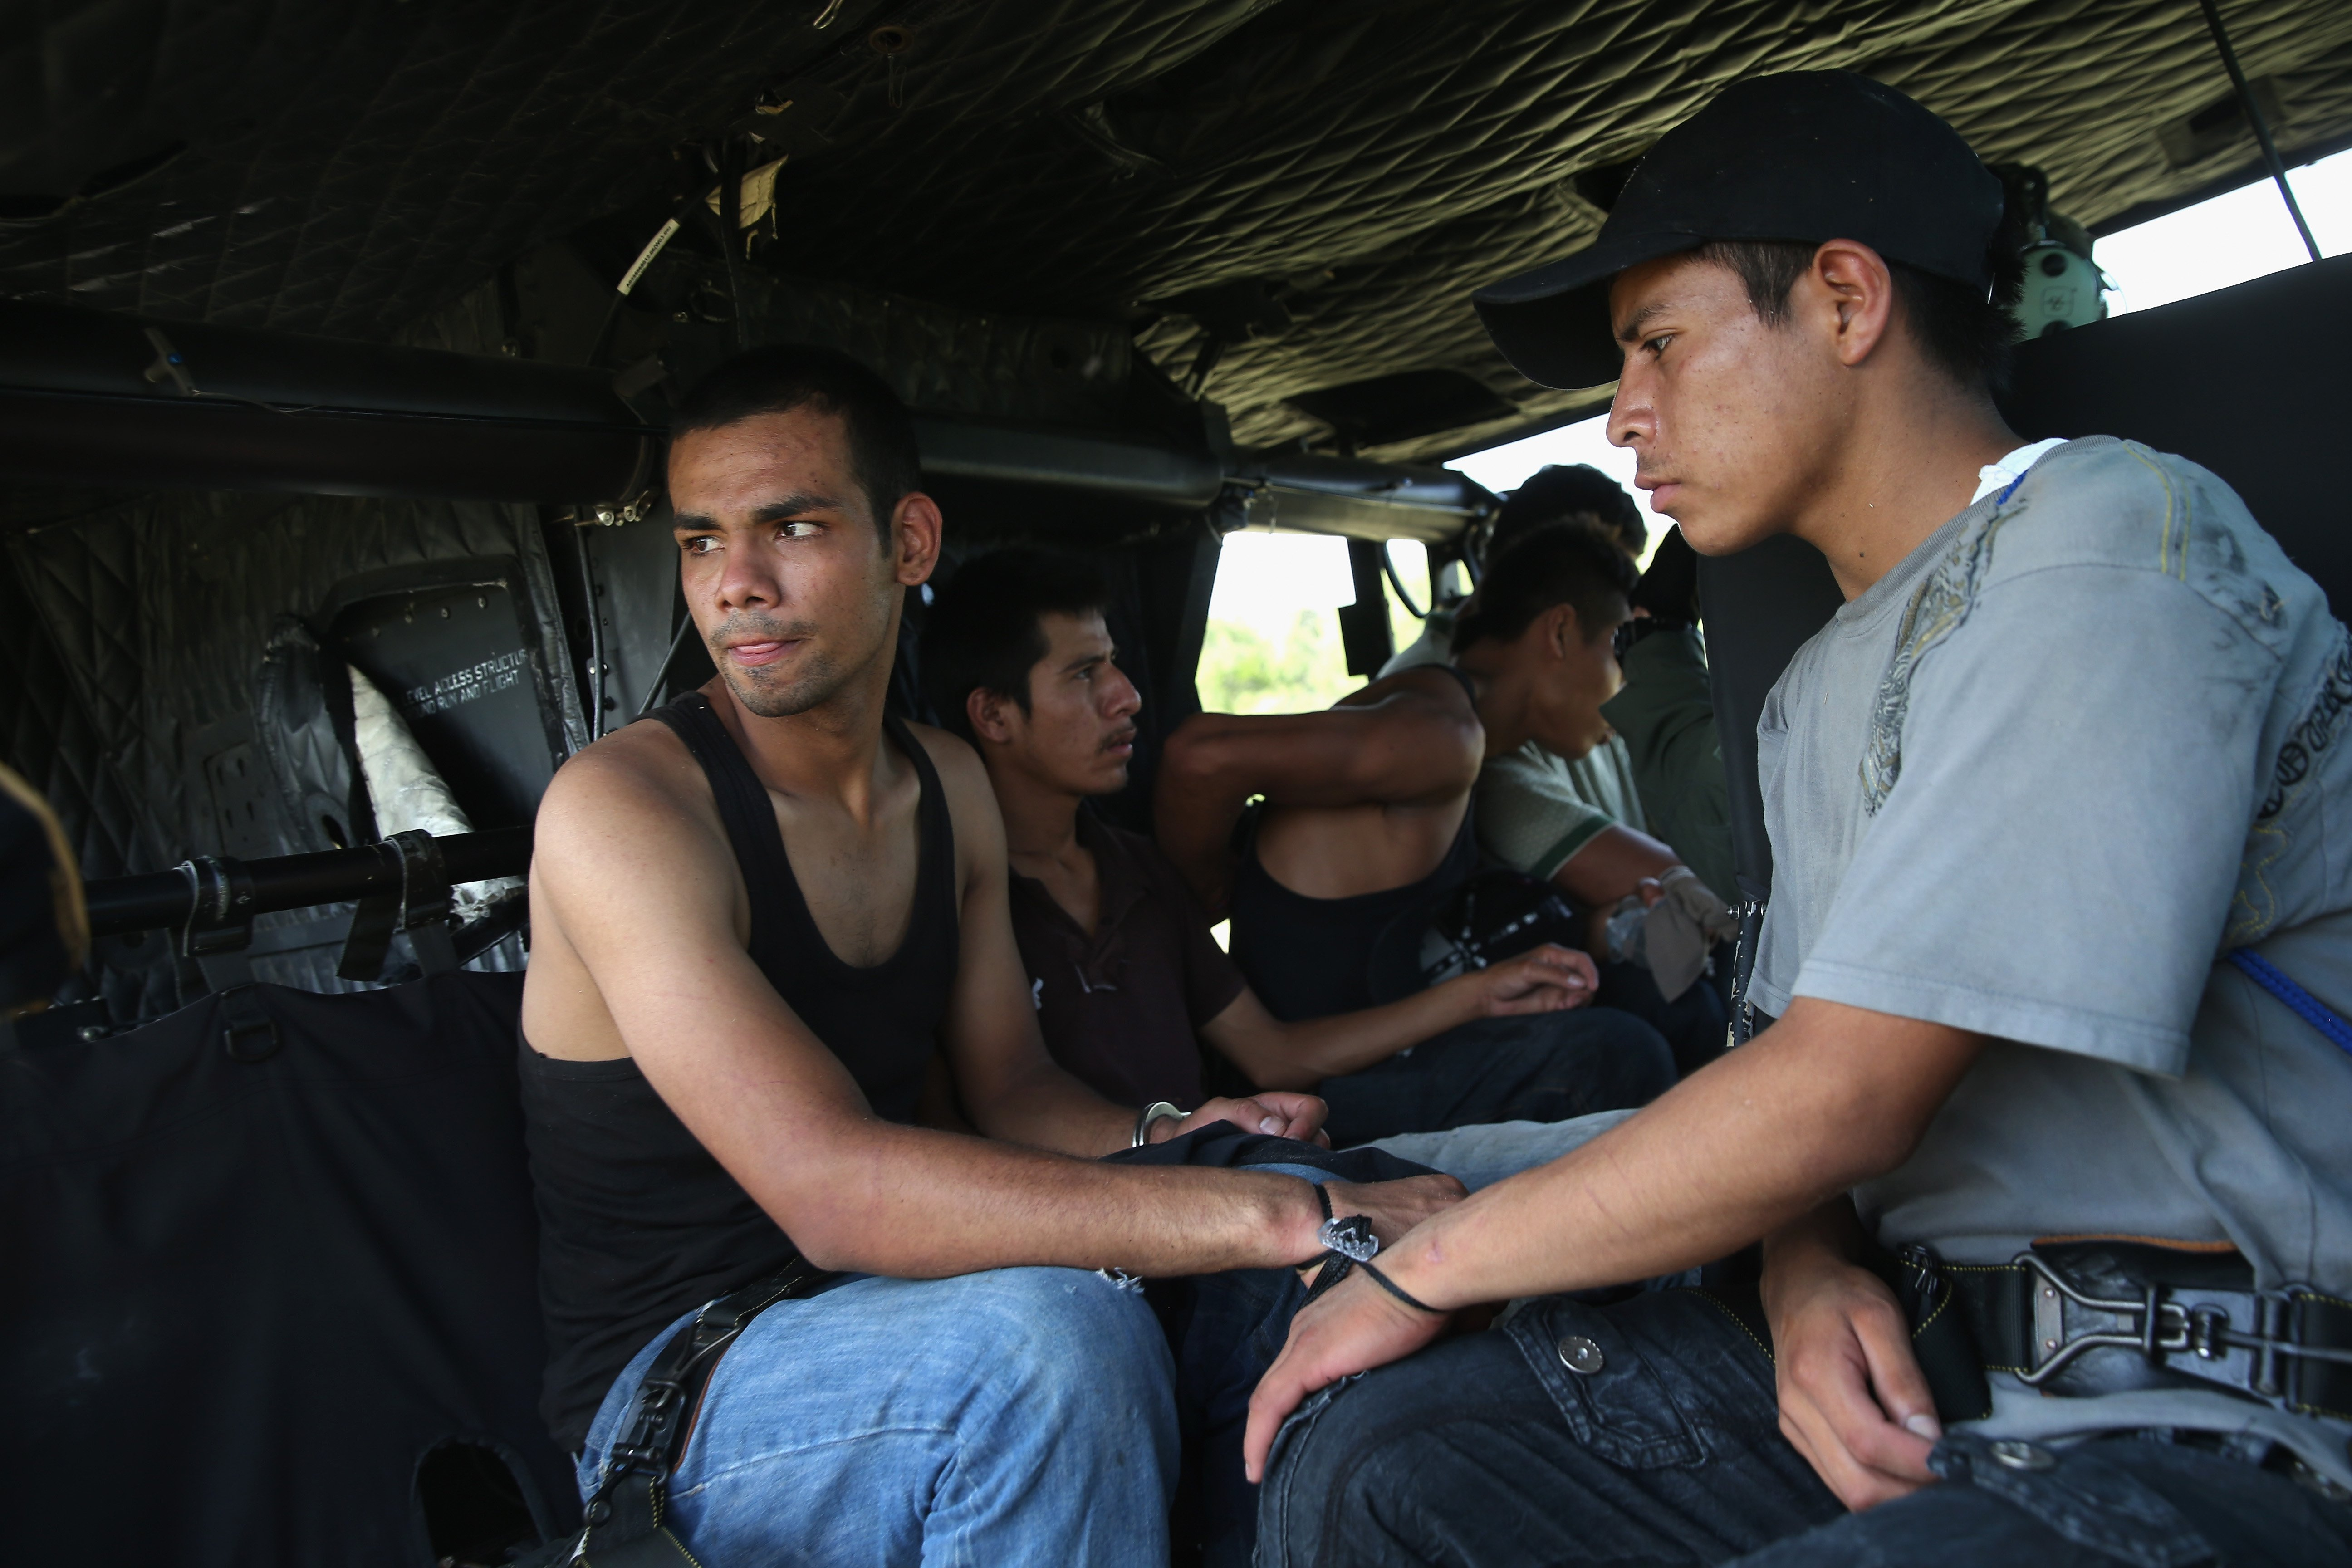 Undocumented immigrants are transported to a U.S. Customs and Border Protection processing center after being detained near Falfurrias, Texas on July 22, 2014.